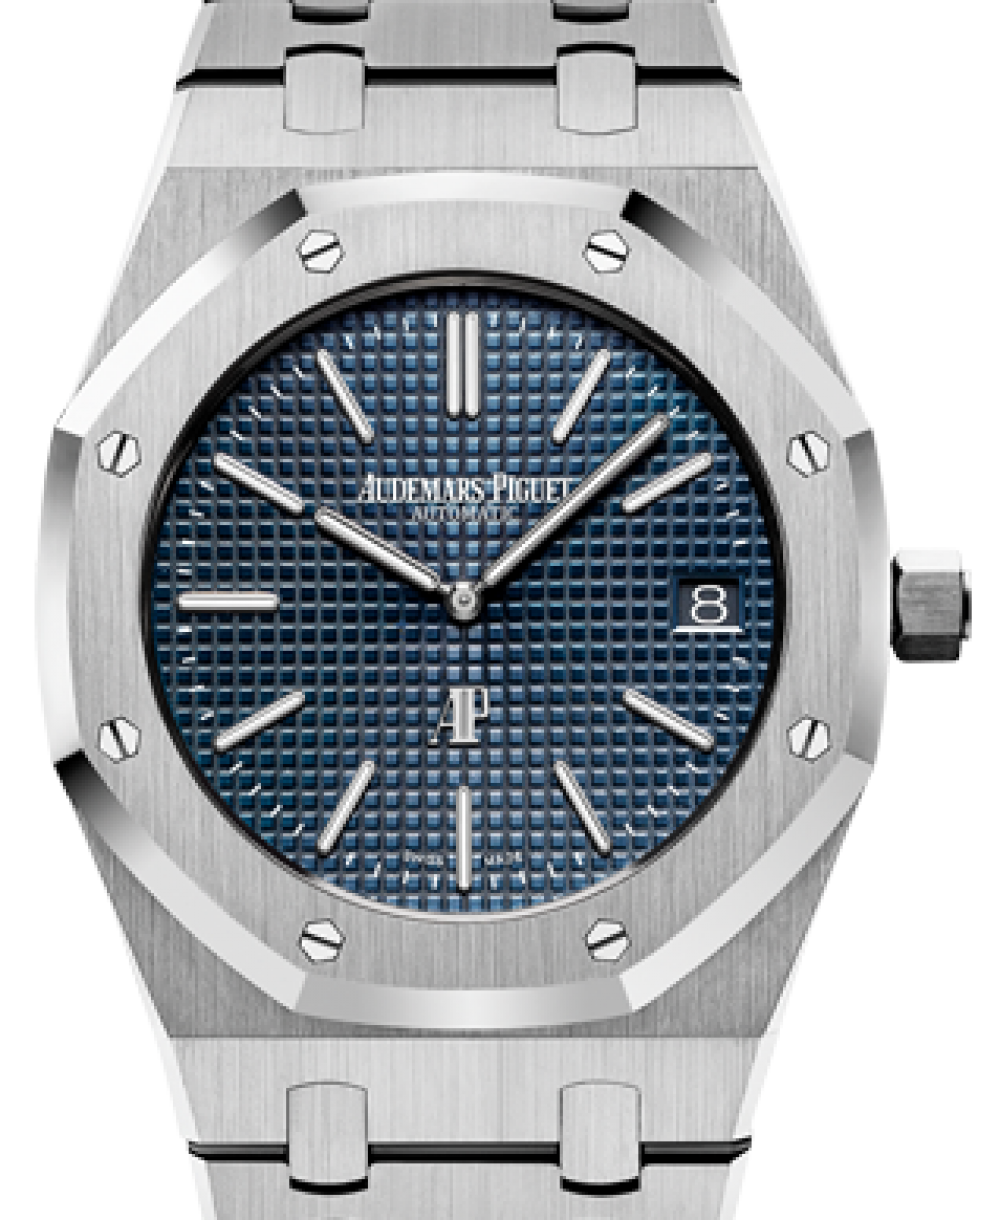 Audemars Piguet 15202st Oo 1240st 01 Royal Oak Extra Thin 39mm Blue Index Stainless Steel Brand New